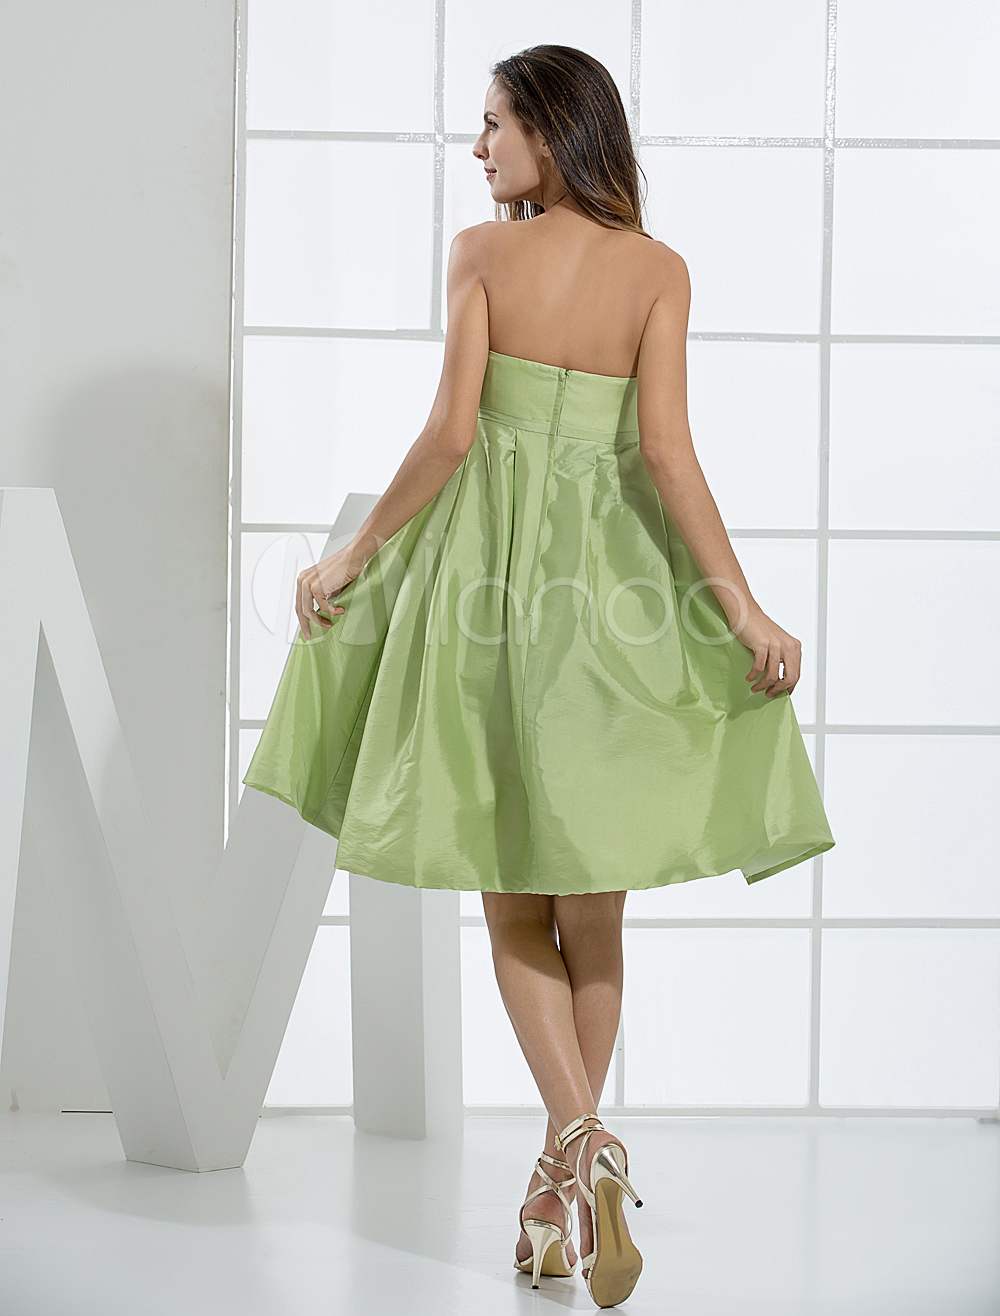 China Wholesale Dresses - Modern Green Strapless A-line Taffeta Womens Homecoming Dress